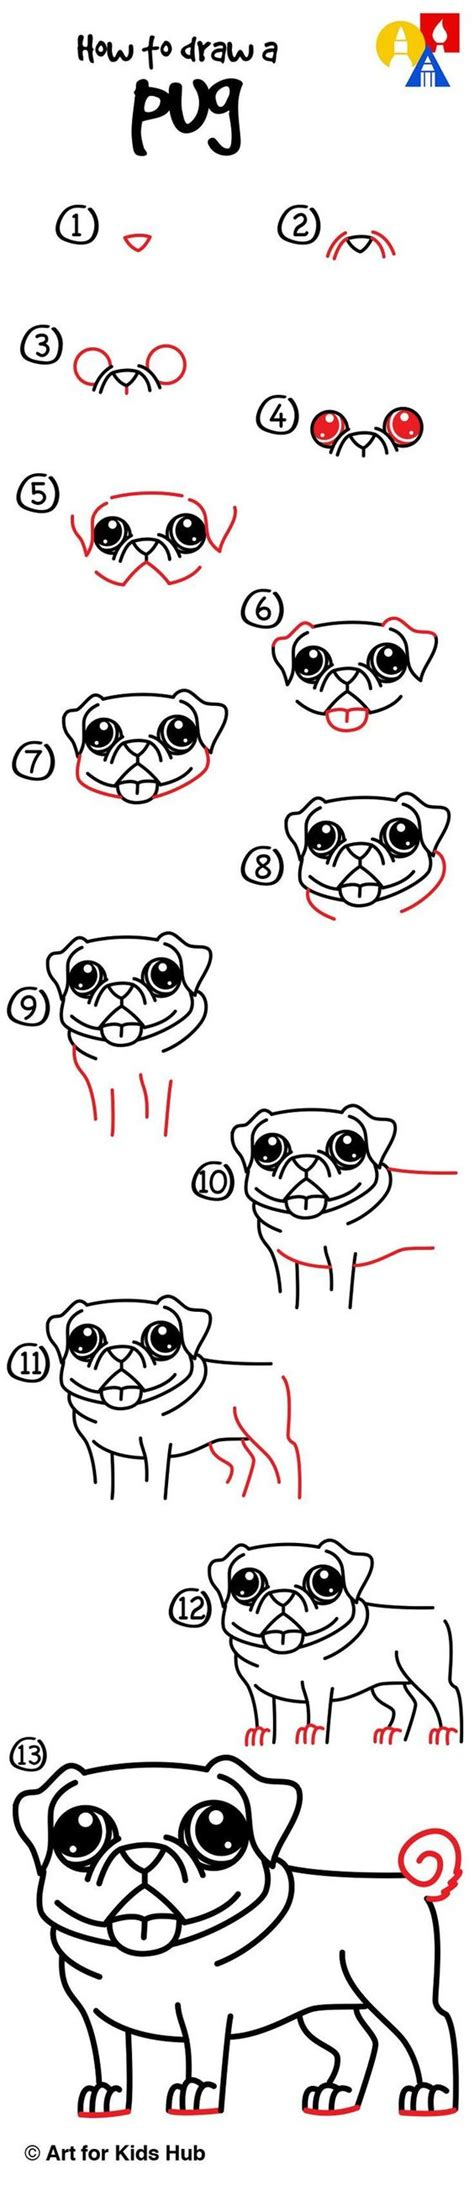 how to draw pugs step by step how to draw a pug for hub